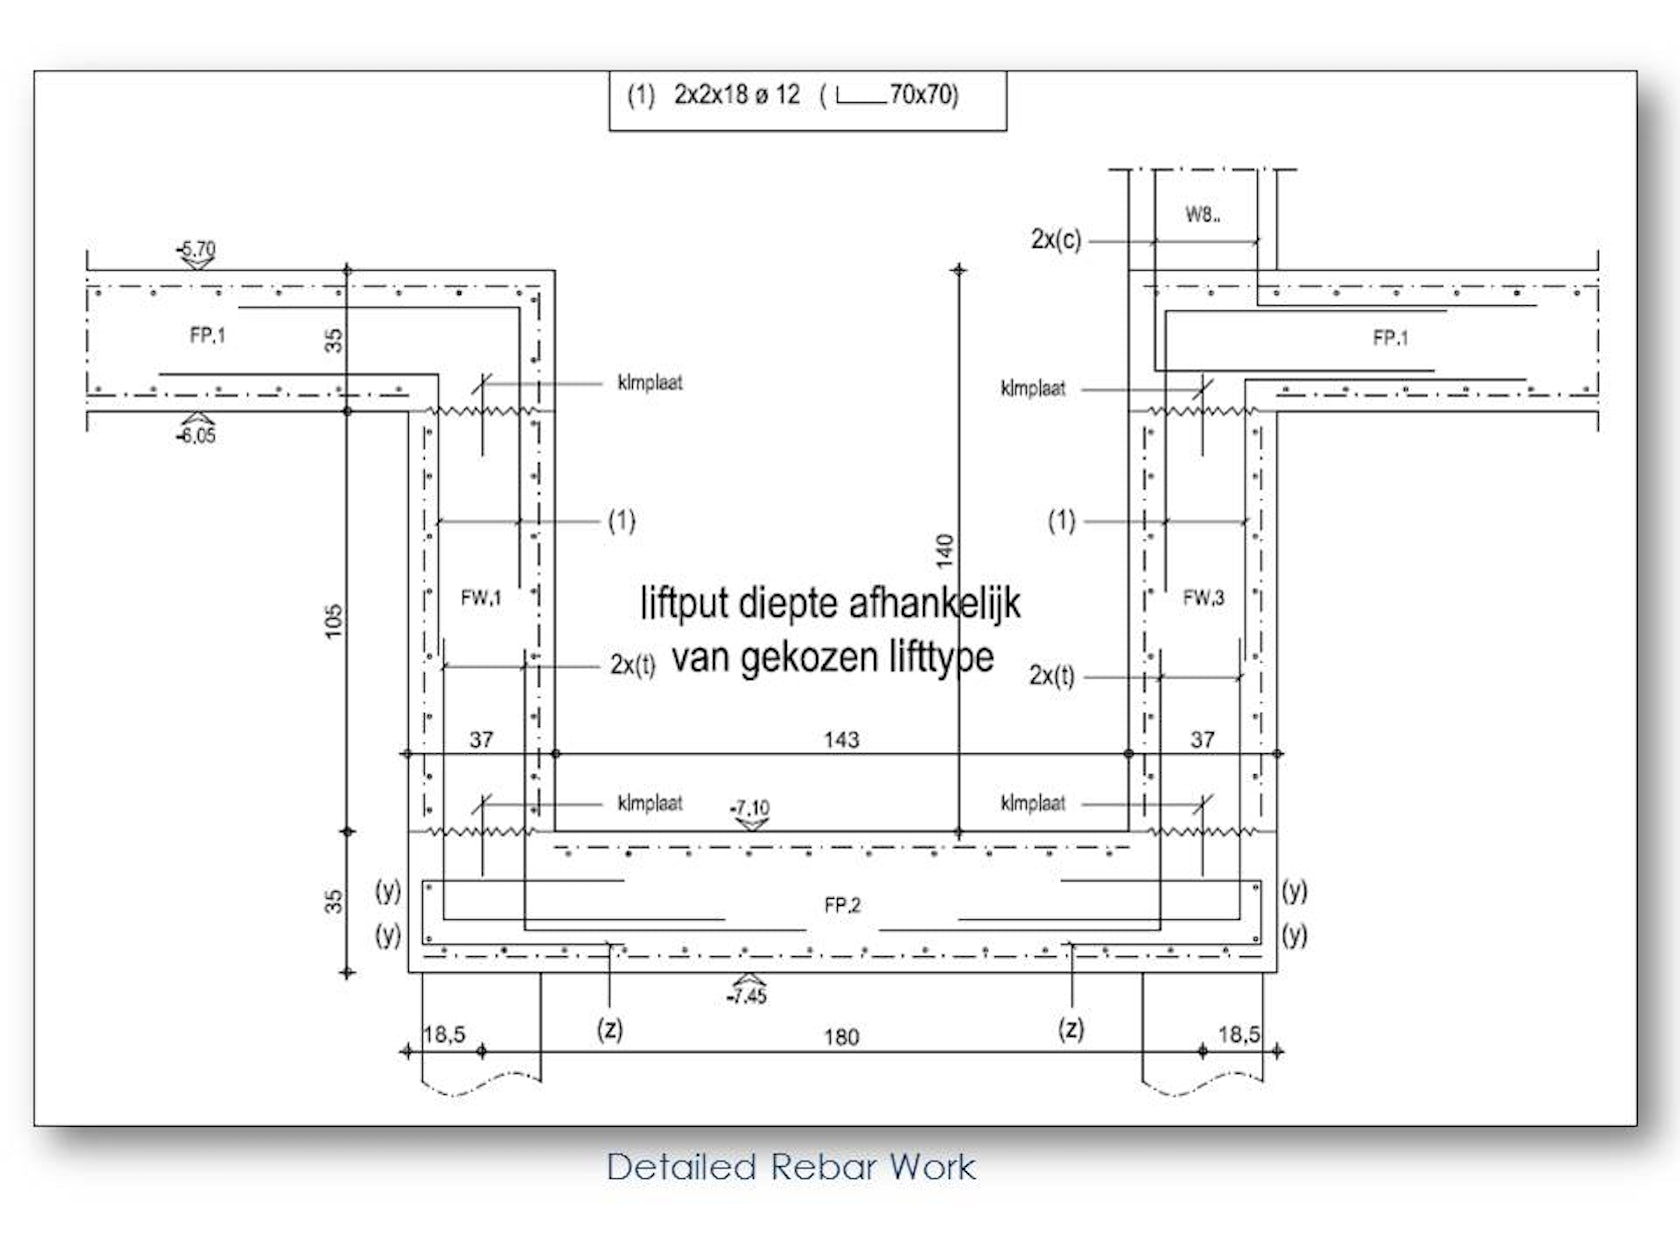 Rebar Detailing And Bar Bending Schedules For A